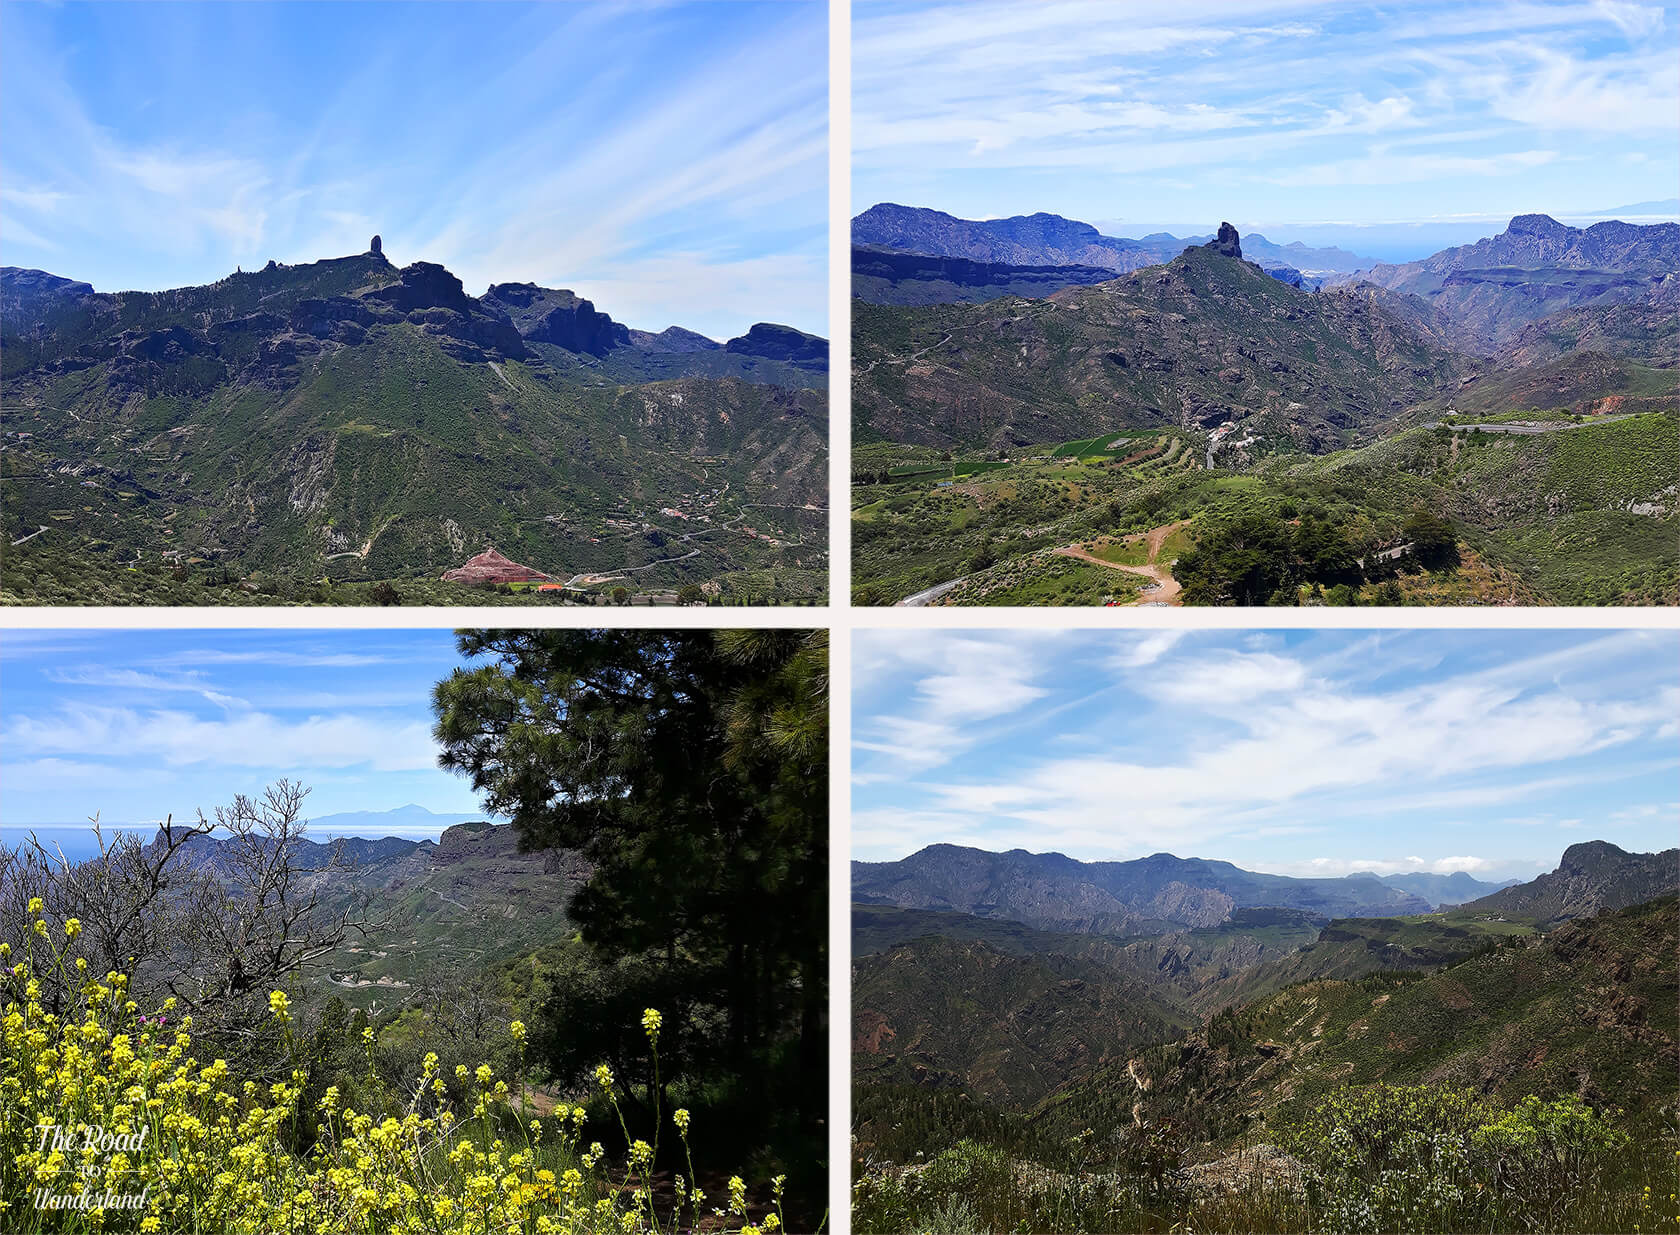 Landscapes of Gran Canaria: Roque Nublo & Roque Bentayga